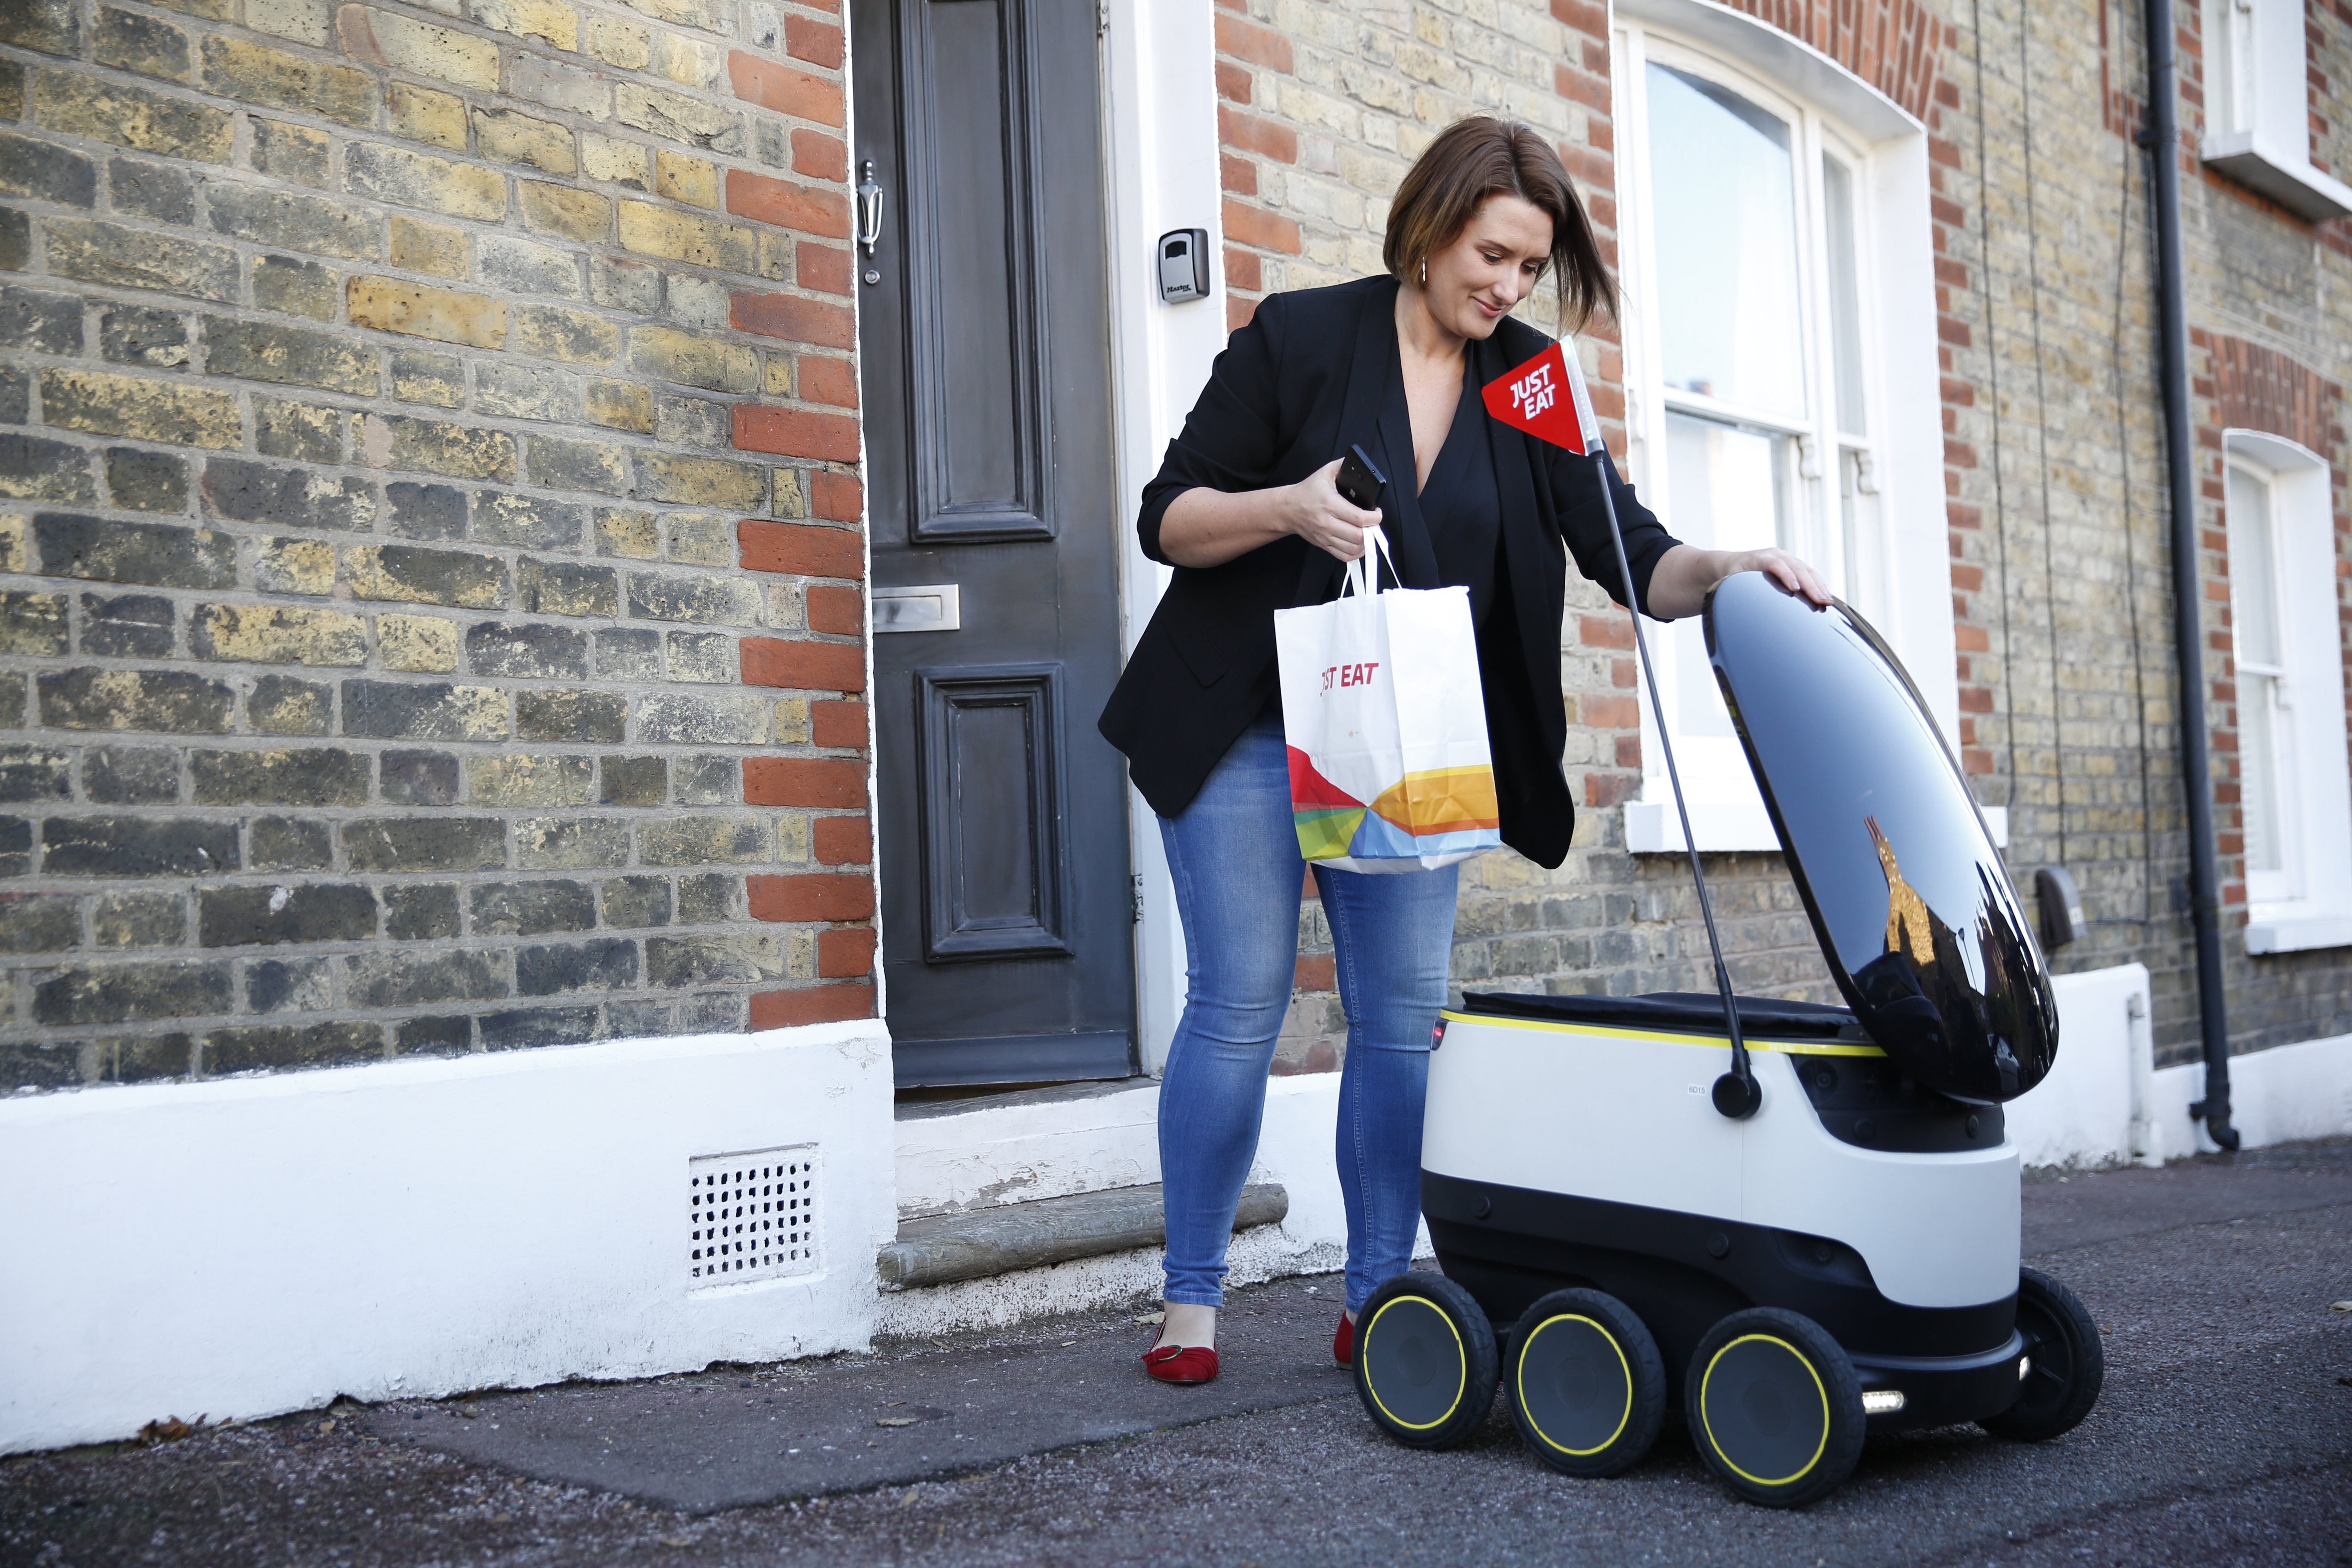 just-eat-deliver-worlds-first-takeaway-by-a-robot-image-3-2.jpg